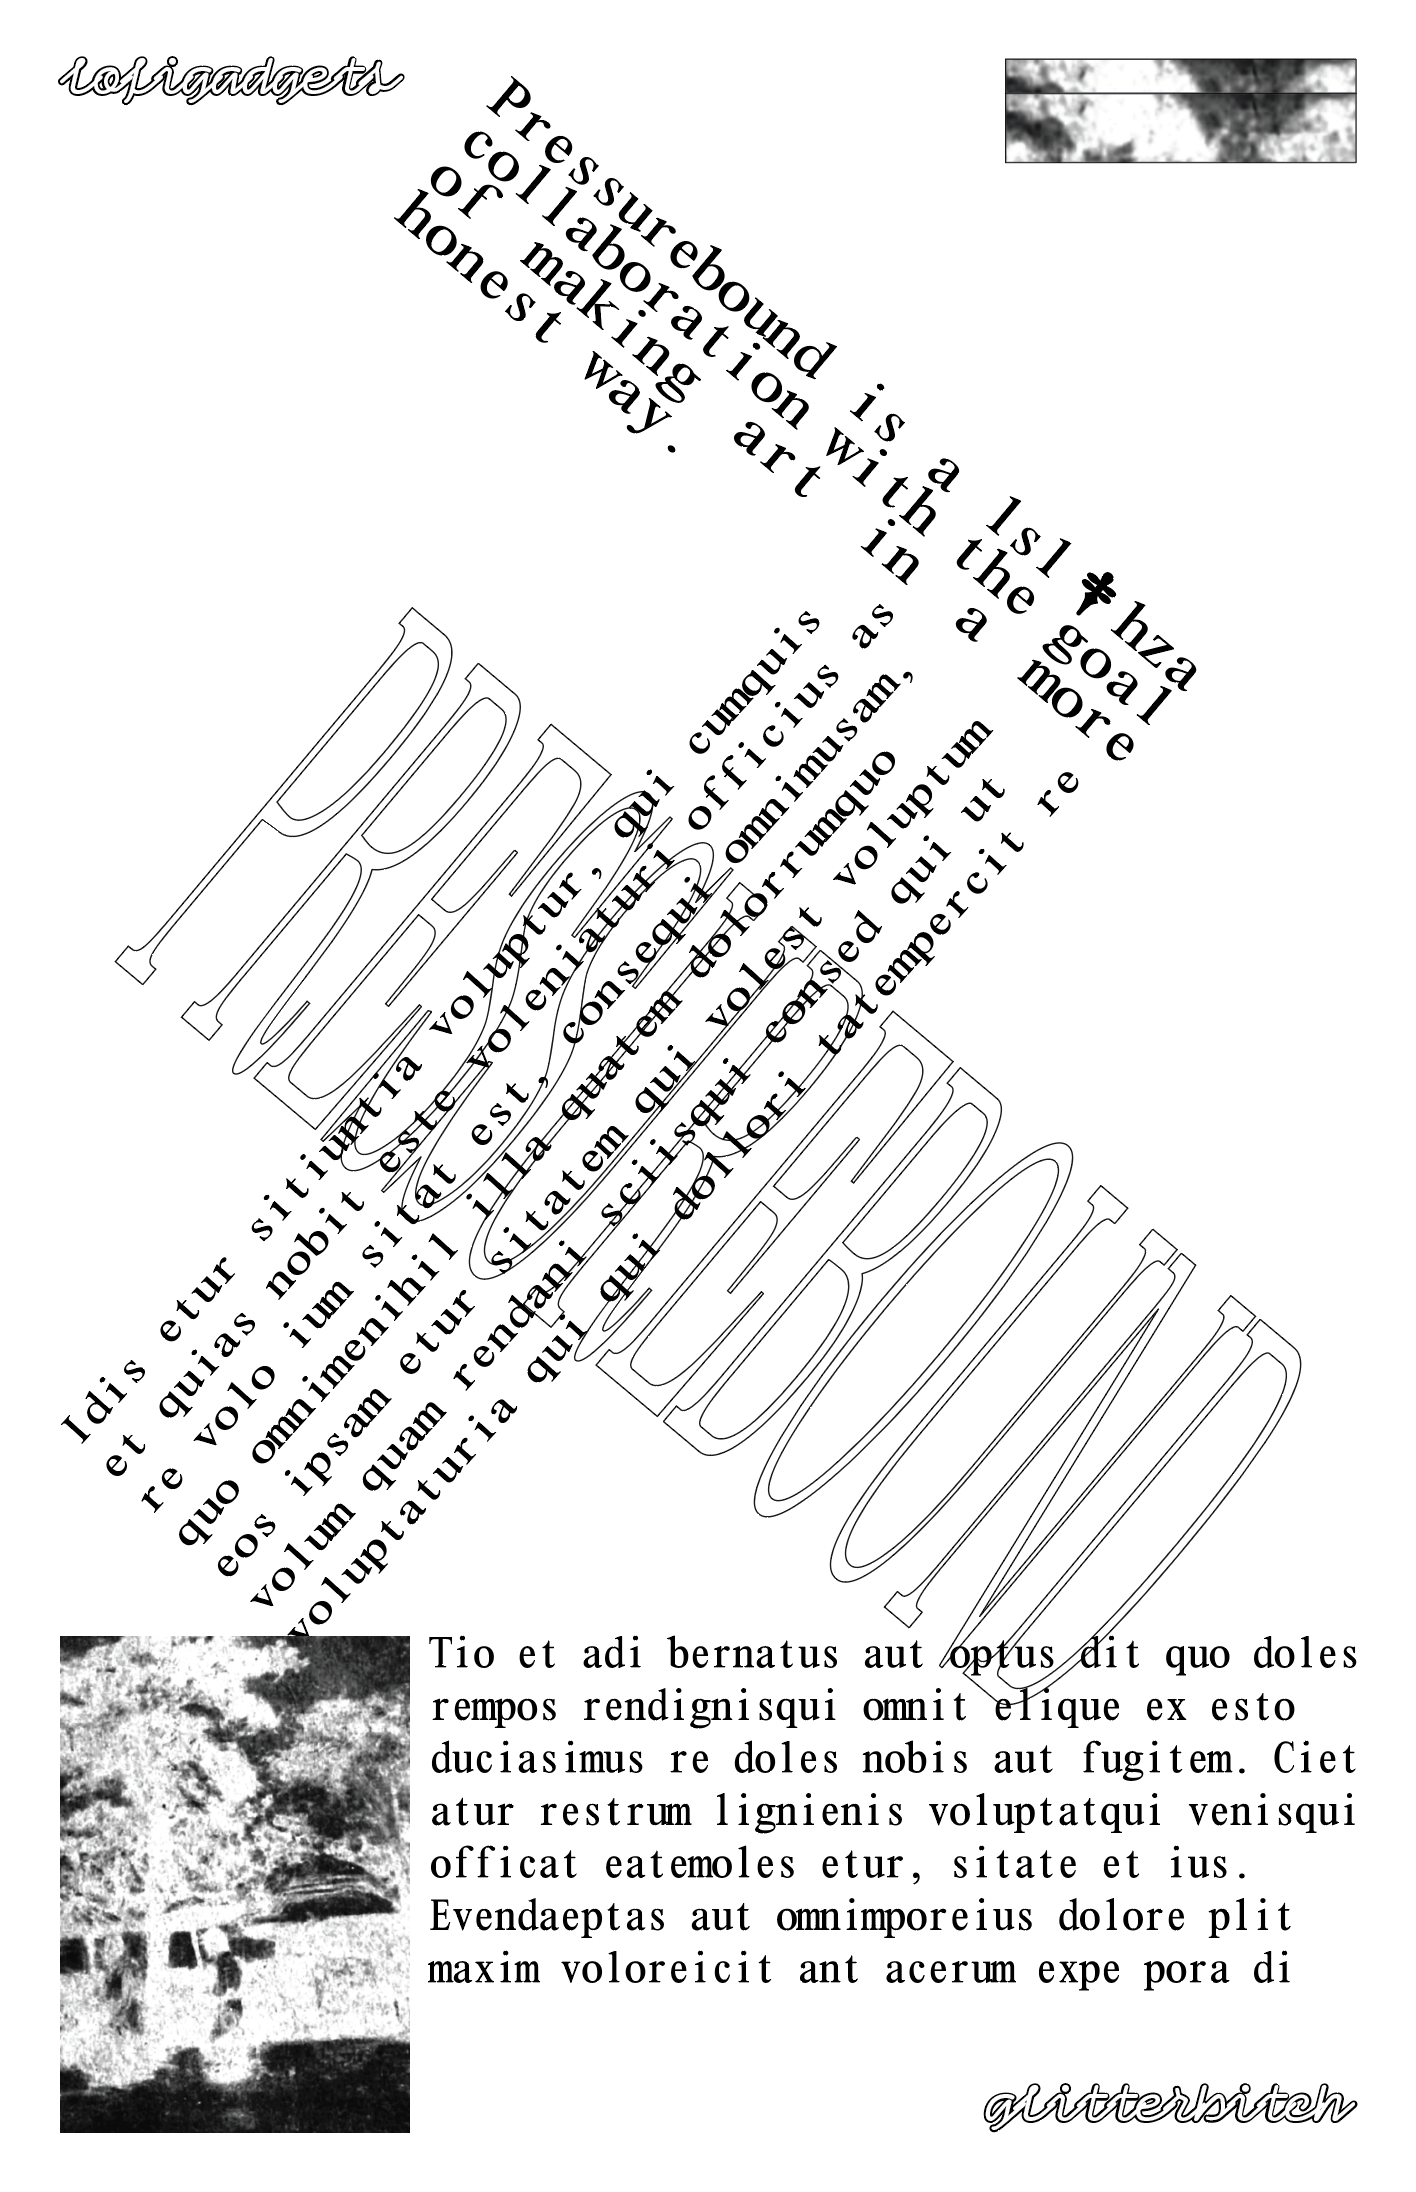 Screenshot of a draft of a poster, in black text/images on a white background. Two paragraphs of text sharply angled to form a 7-like diagonal composition, of which the uppermost paragraph reads 'Pressurebound is a lsl & hza collaboration with the goal of making art in a more honest way'. (The & is replaced with a dagger symbol.) The word 'PRESSUREBOUND' stretched tall and narrow in a black outline (with no fill) in the background. At the top and bottom of the composition are snippets of an unidentifiable image and some filler text.